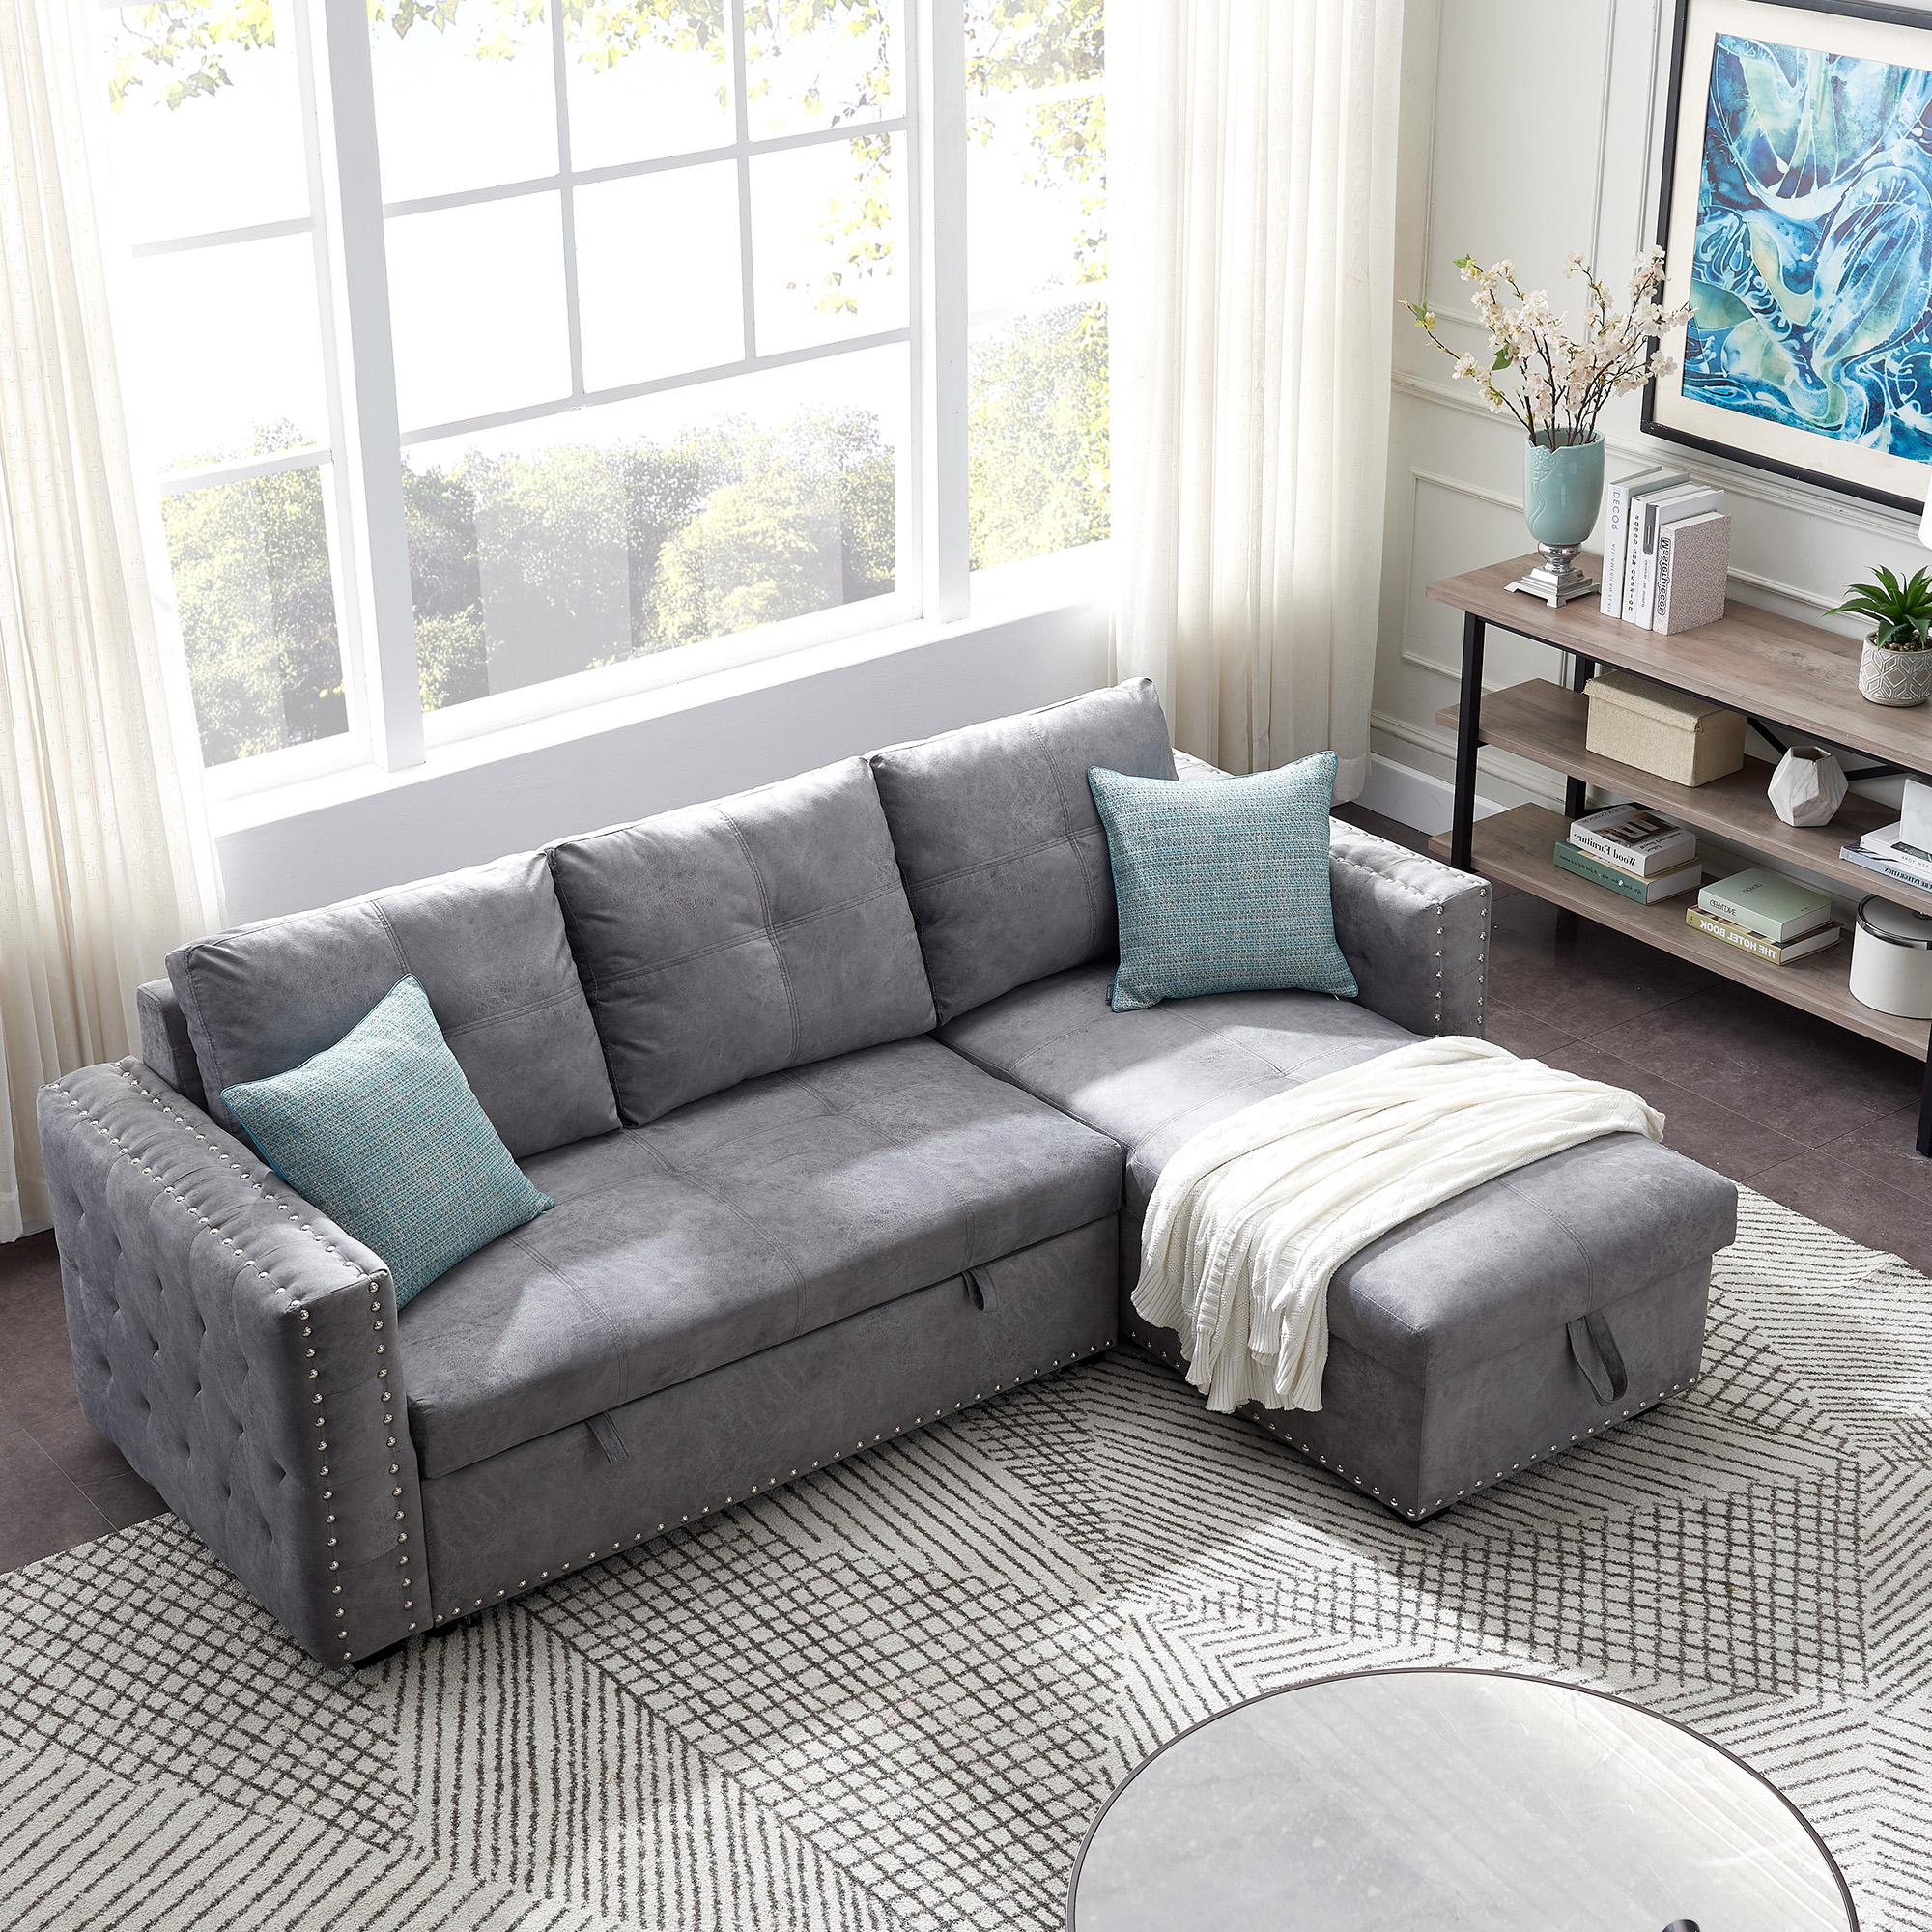 Segmart Sectional Sofas, Modern Upholstered Sofa With Within Most Popular Palisades Reversible Small Space Sectional Sofas With Storage (View 1 of 25)